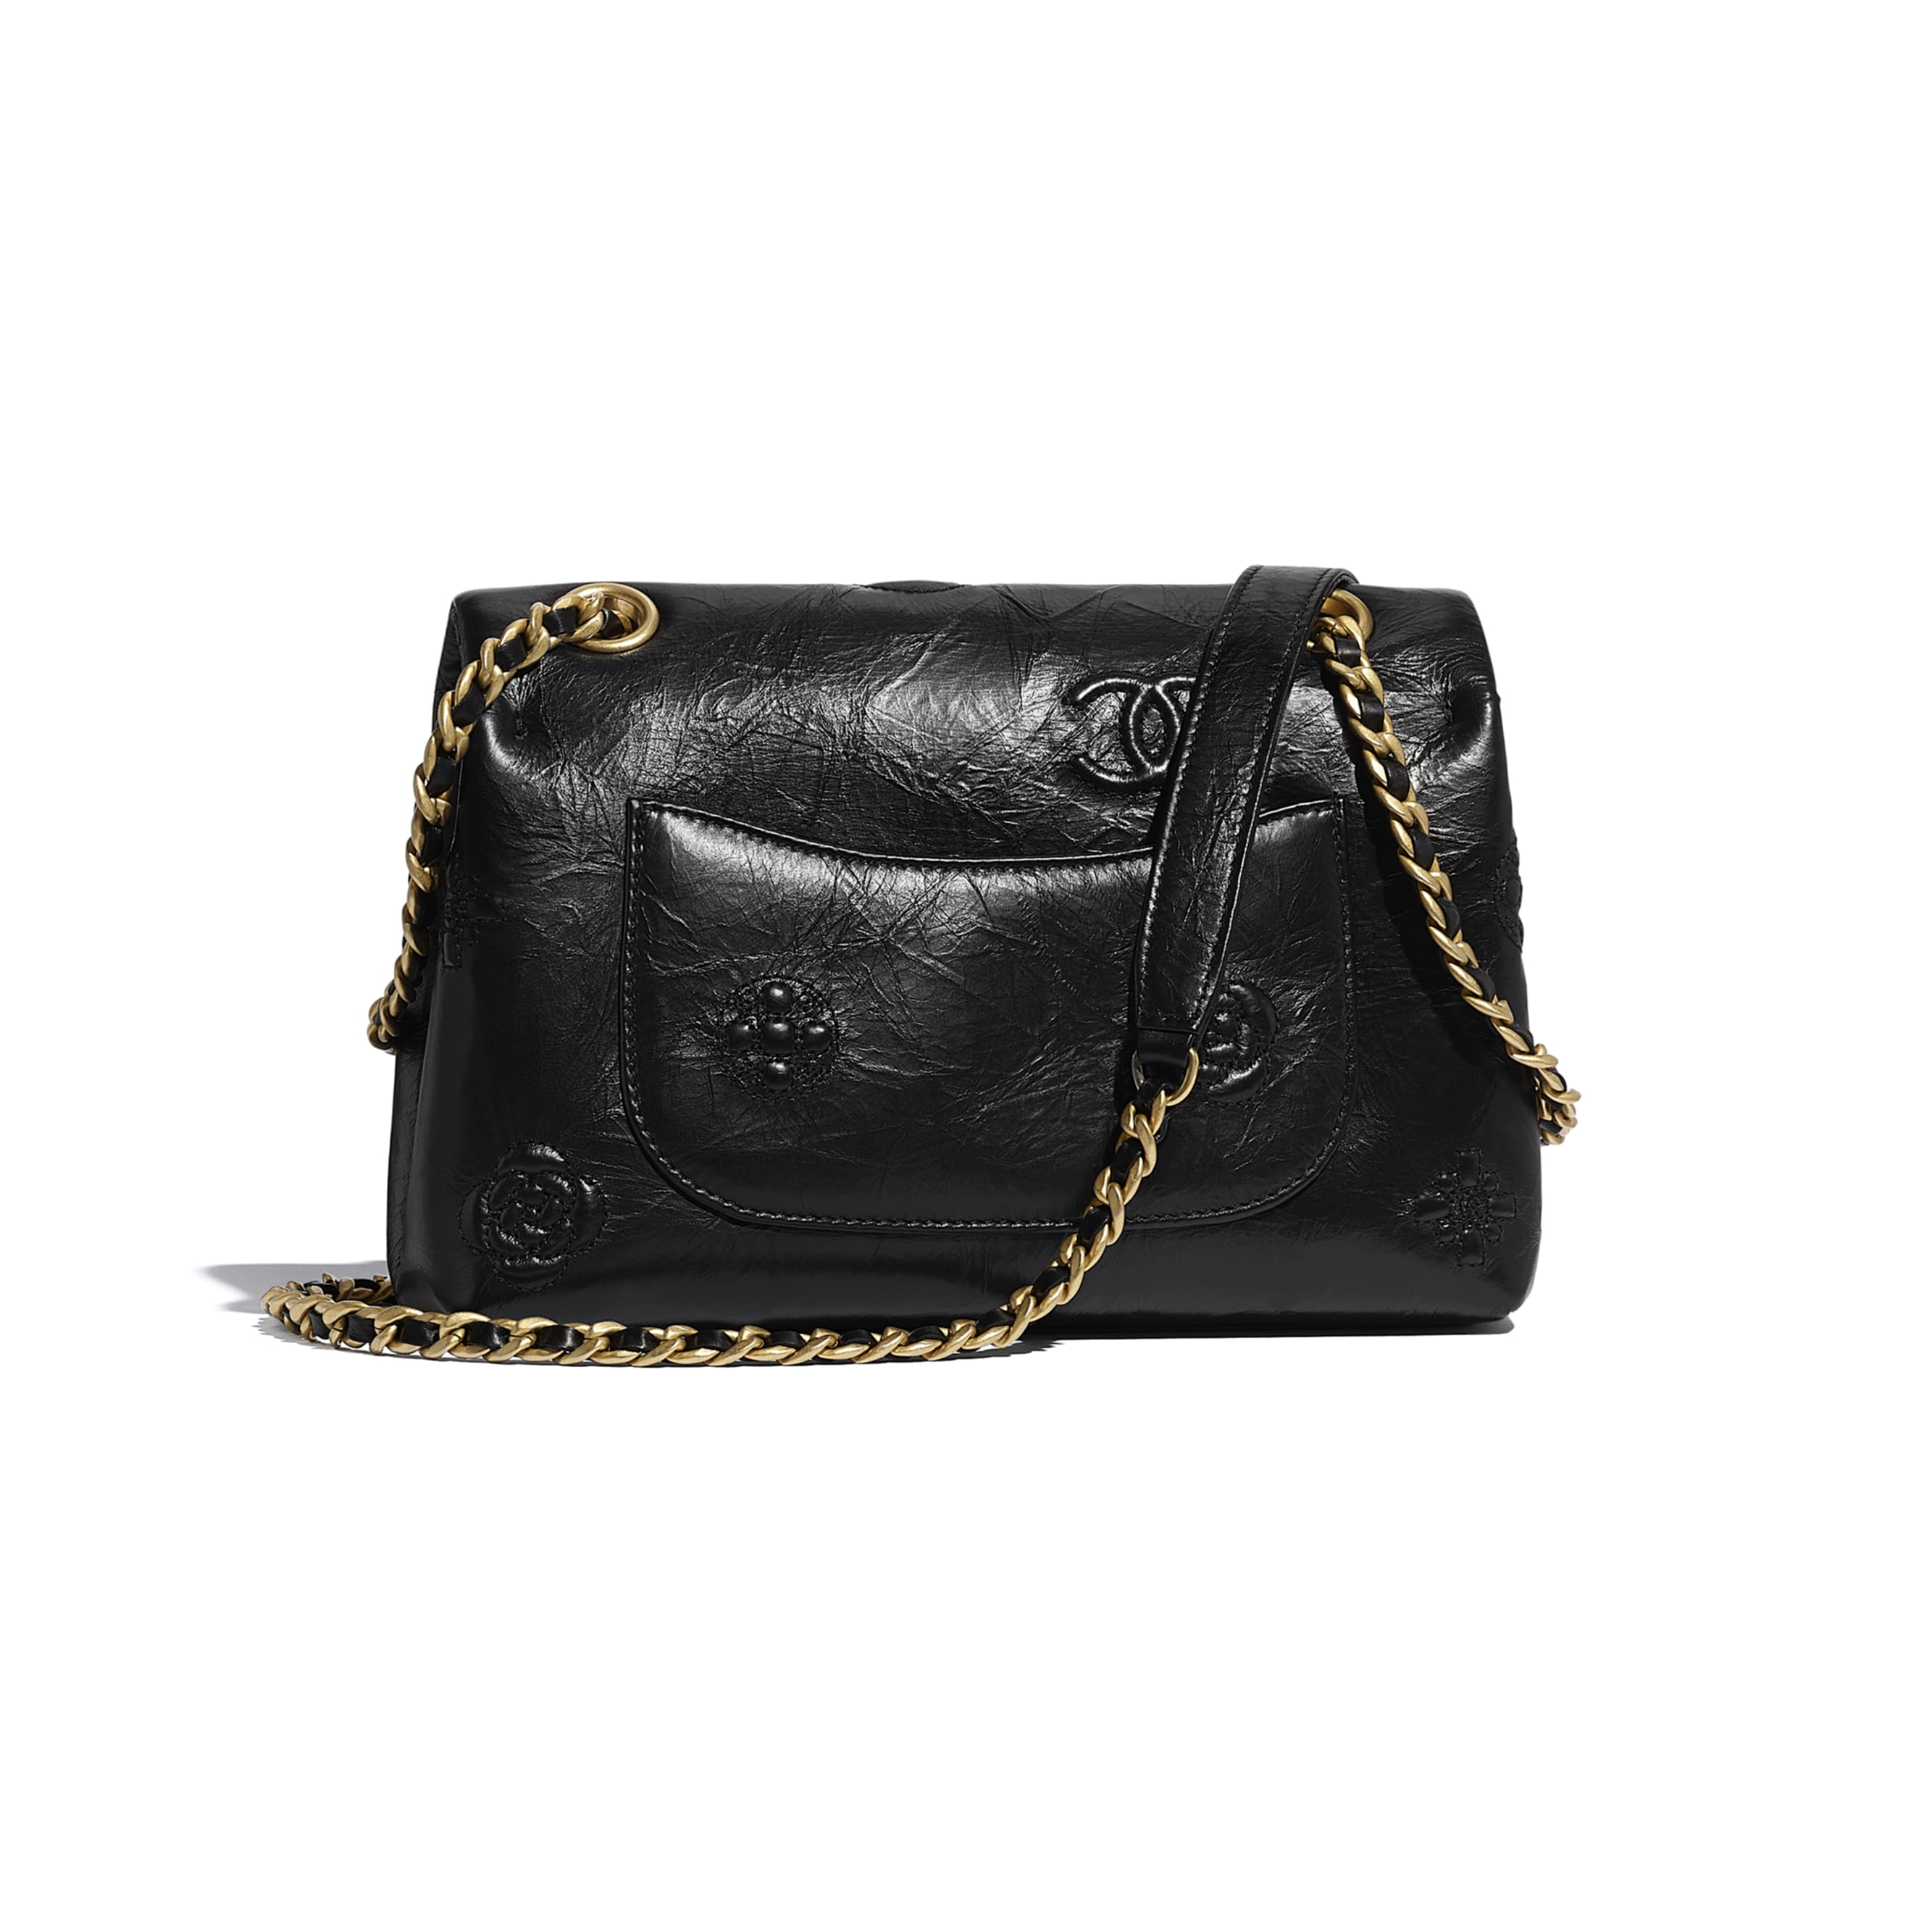 Small Flap Bag - Black - Crumpled Calfskin & Gold Metal - CHANEL - Alternative view - see standard sized version